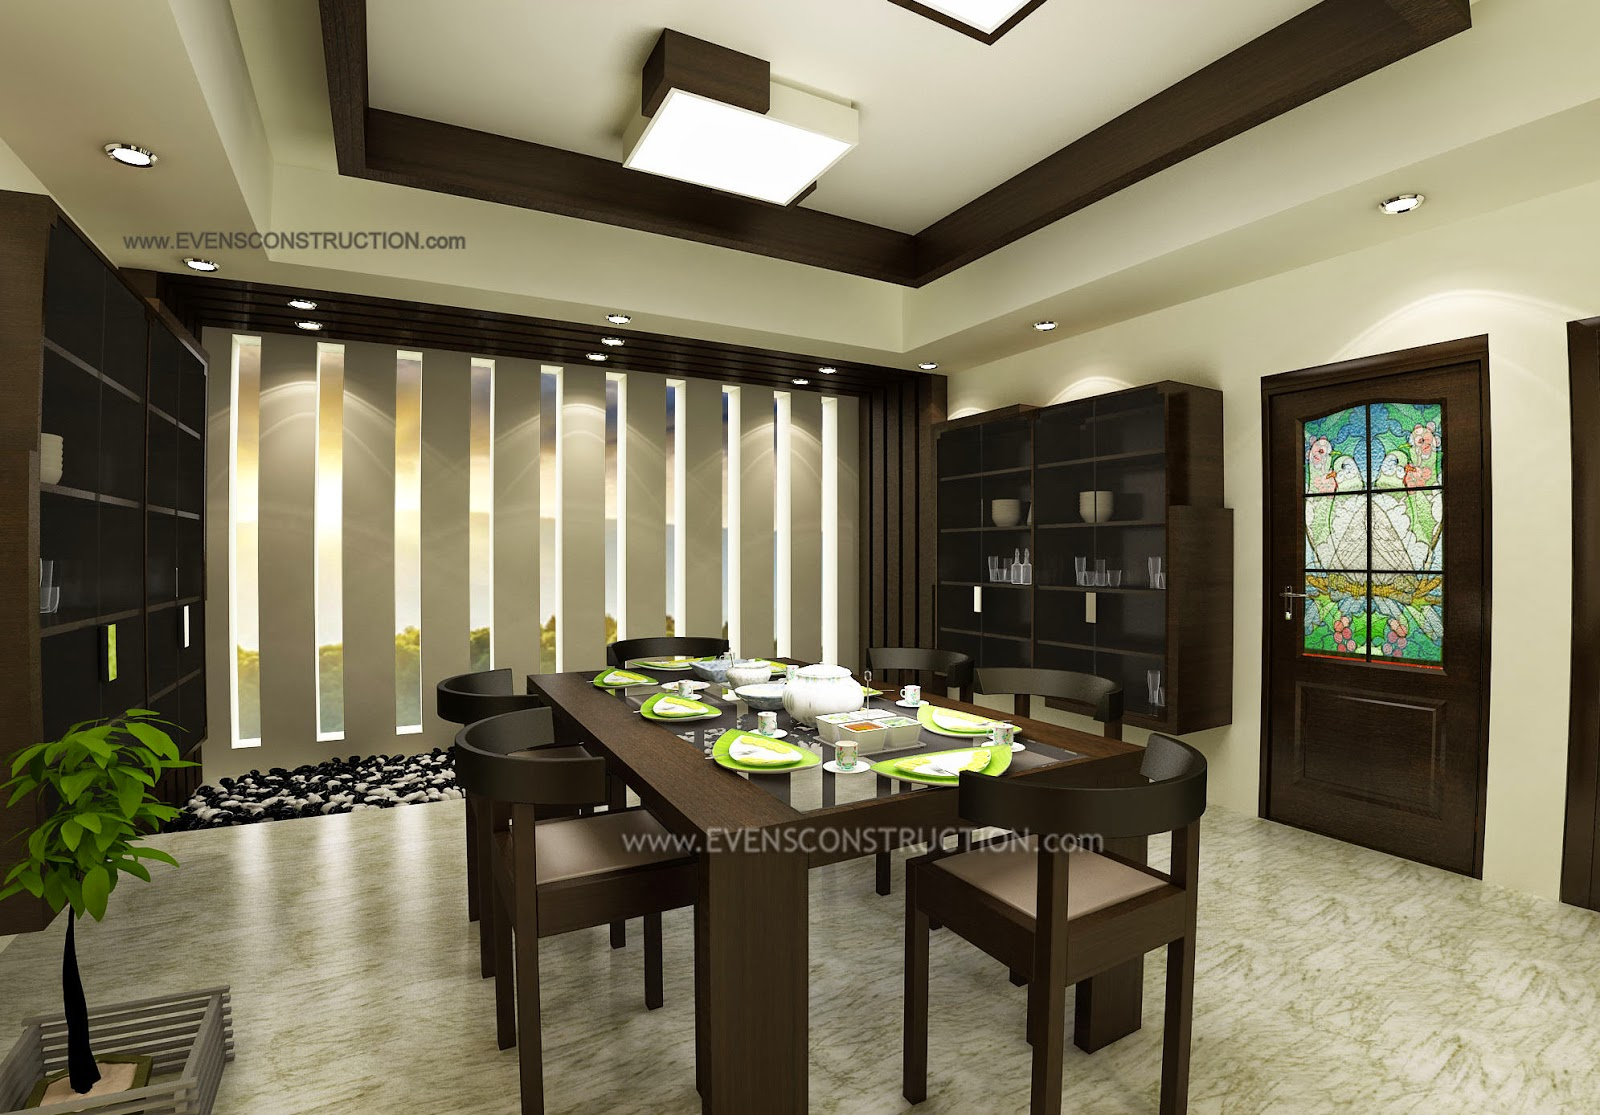 Evens construction pvt ltd modern dining room - Design for dining room ...